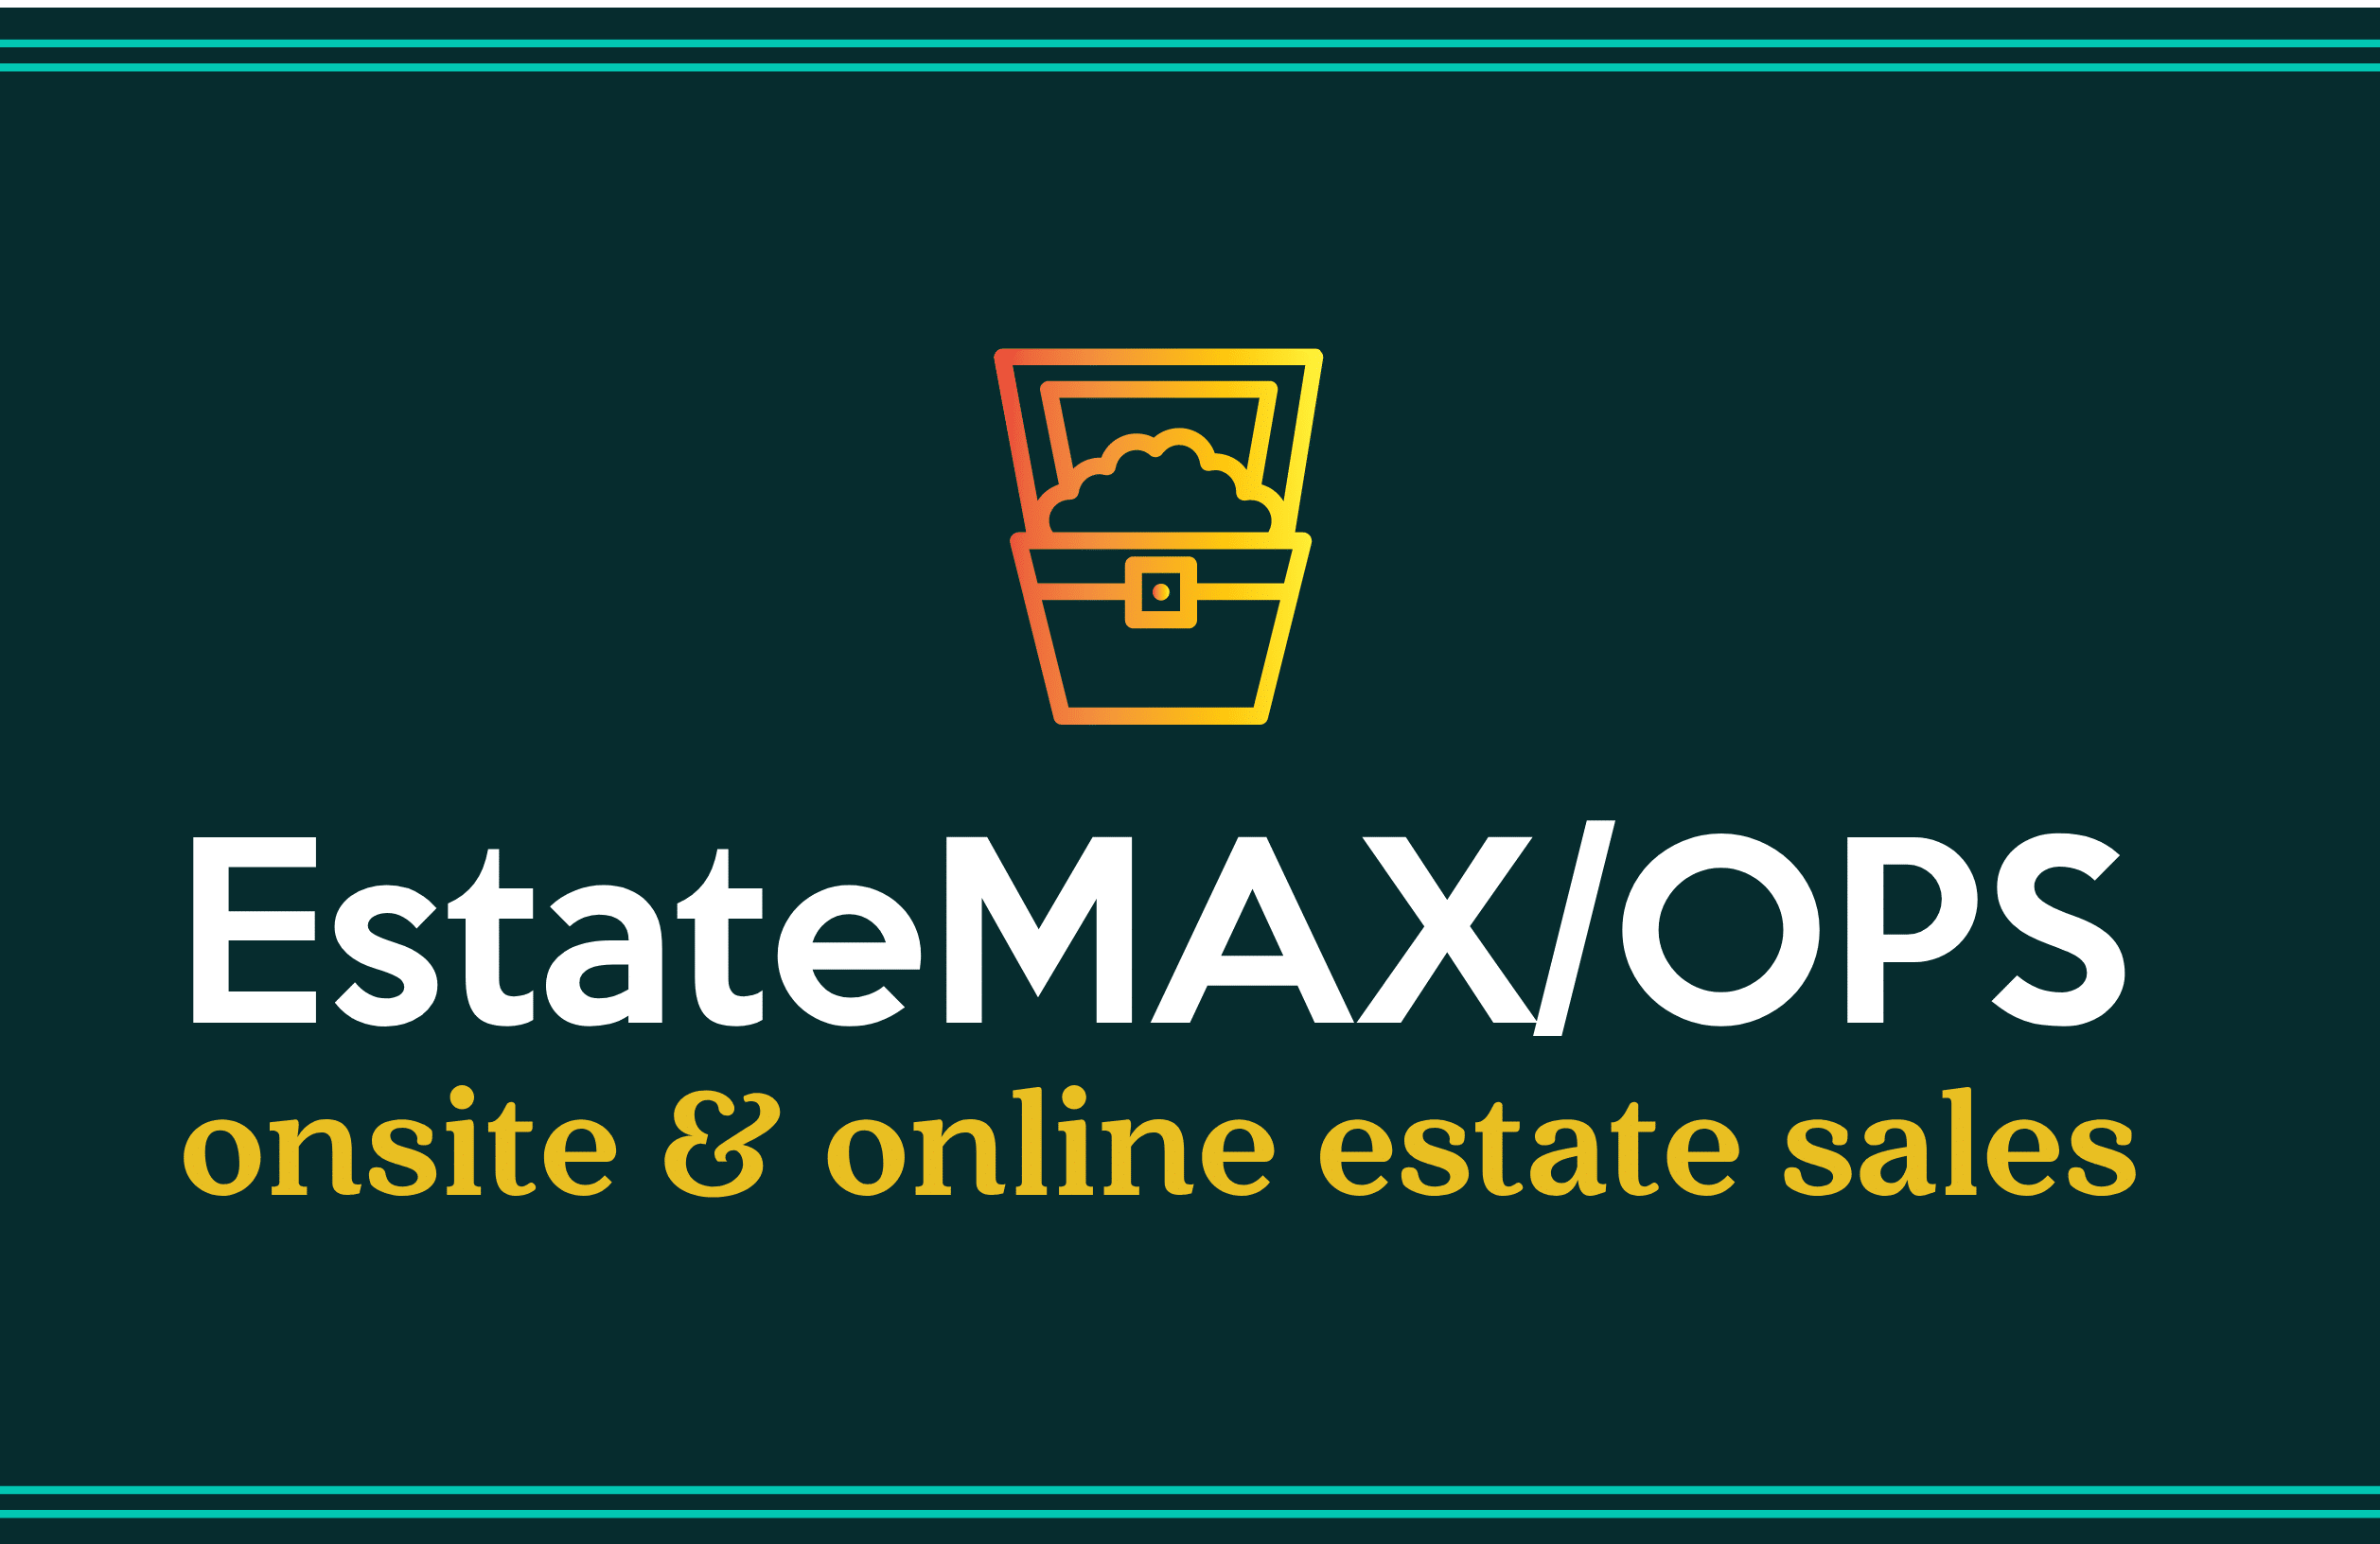 EstateMax/OPS : Onsite & Online Estate & Downsizing Sales for Seniors & Boomers Transitions, Probate, Trusts